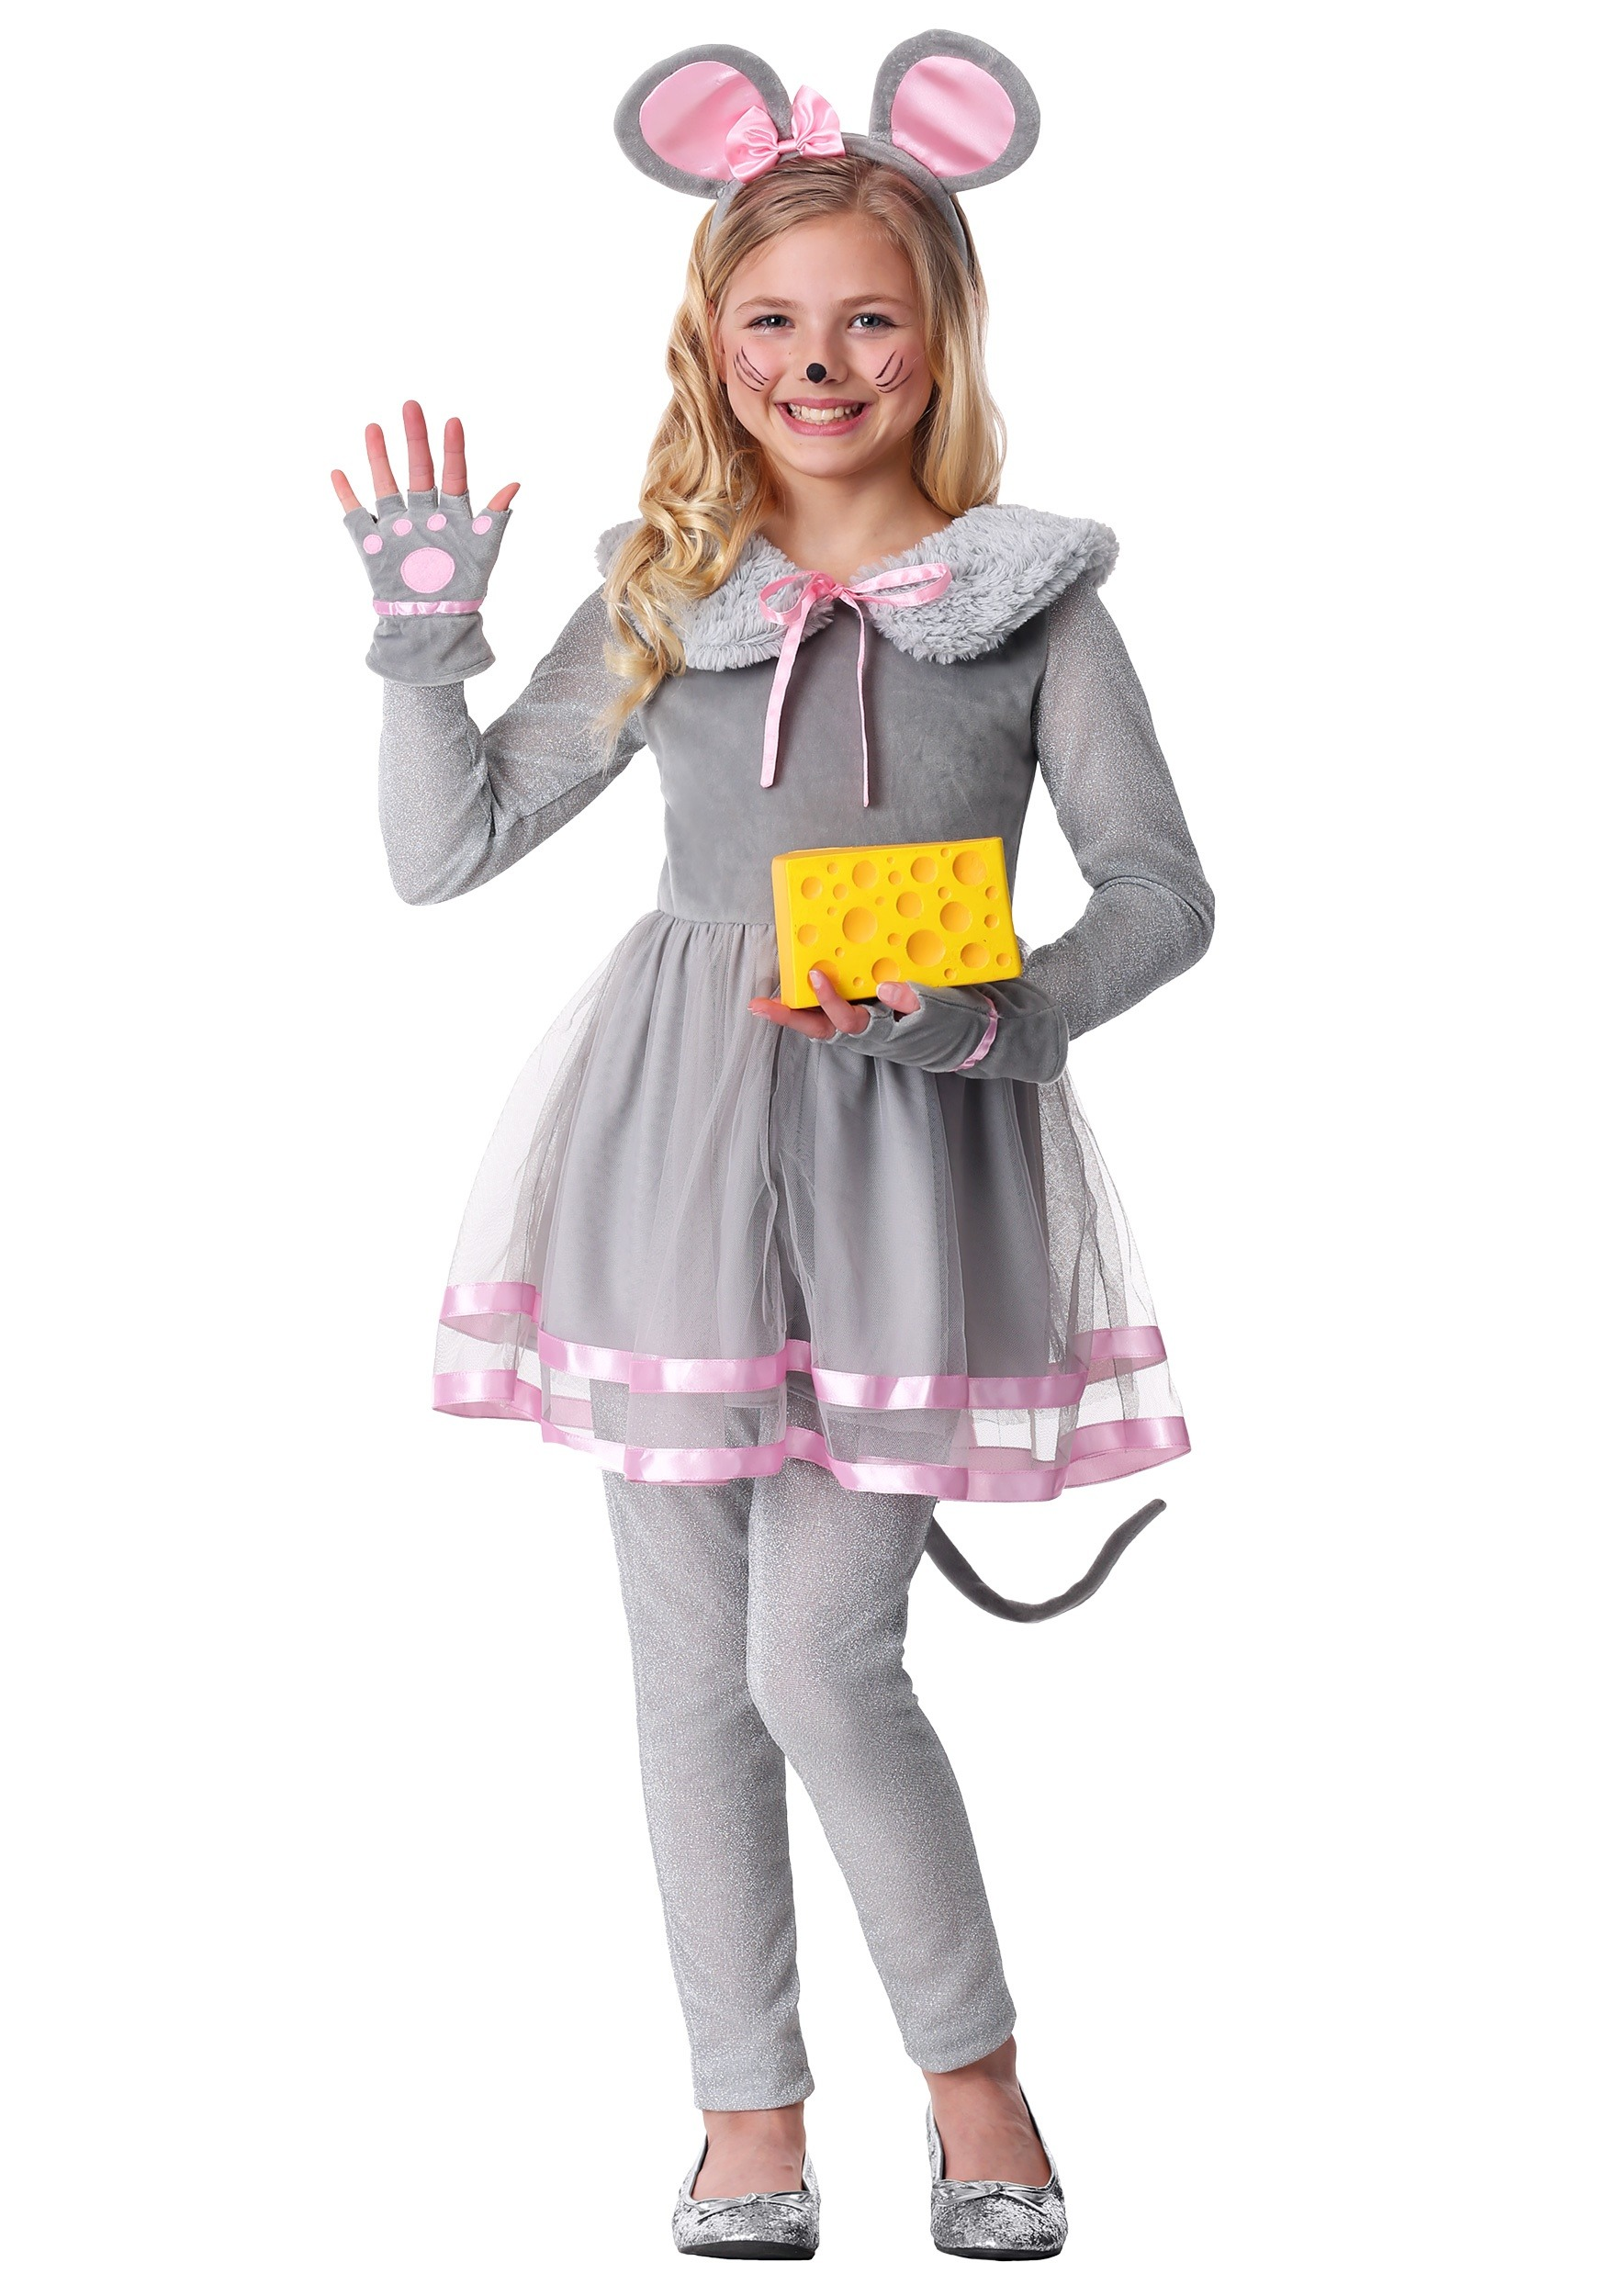 costume mouse cute costumes halloween halloweencostumes tween outfits